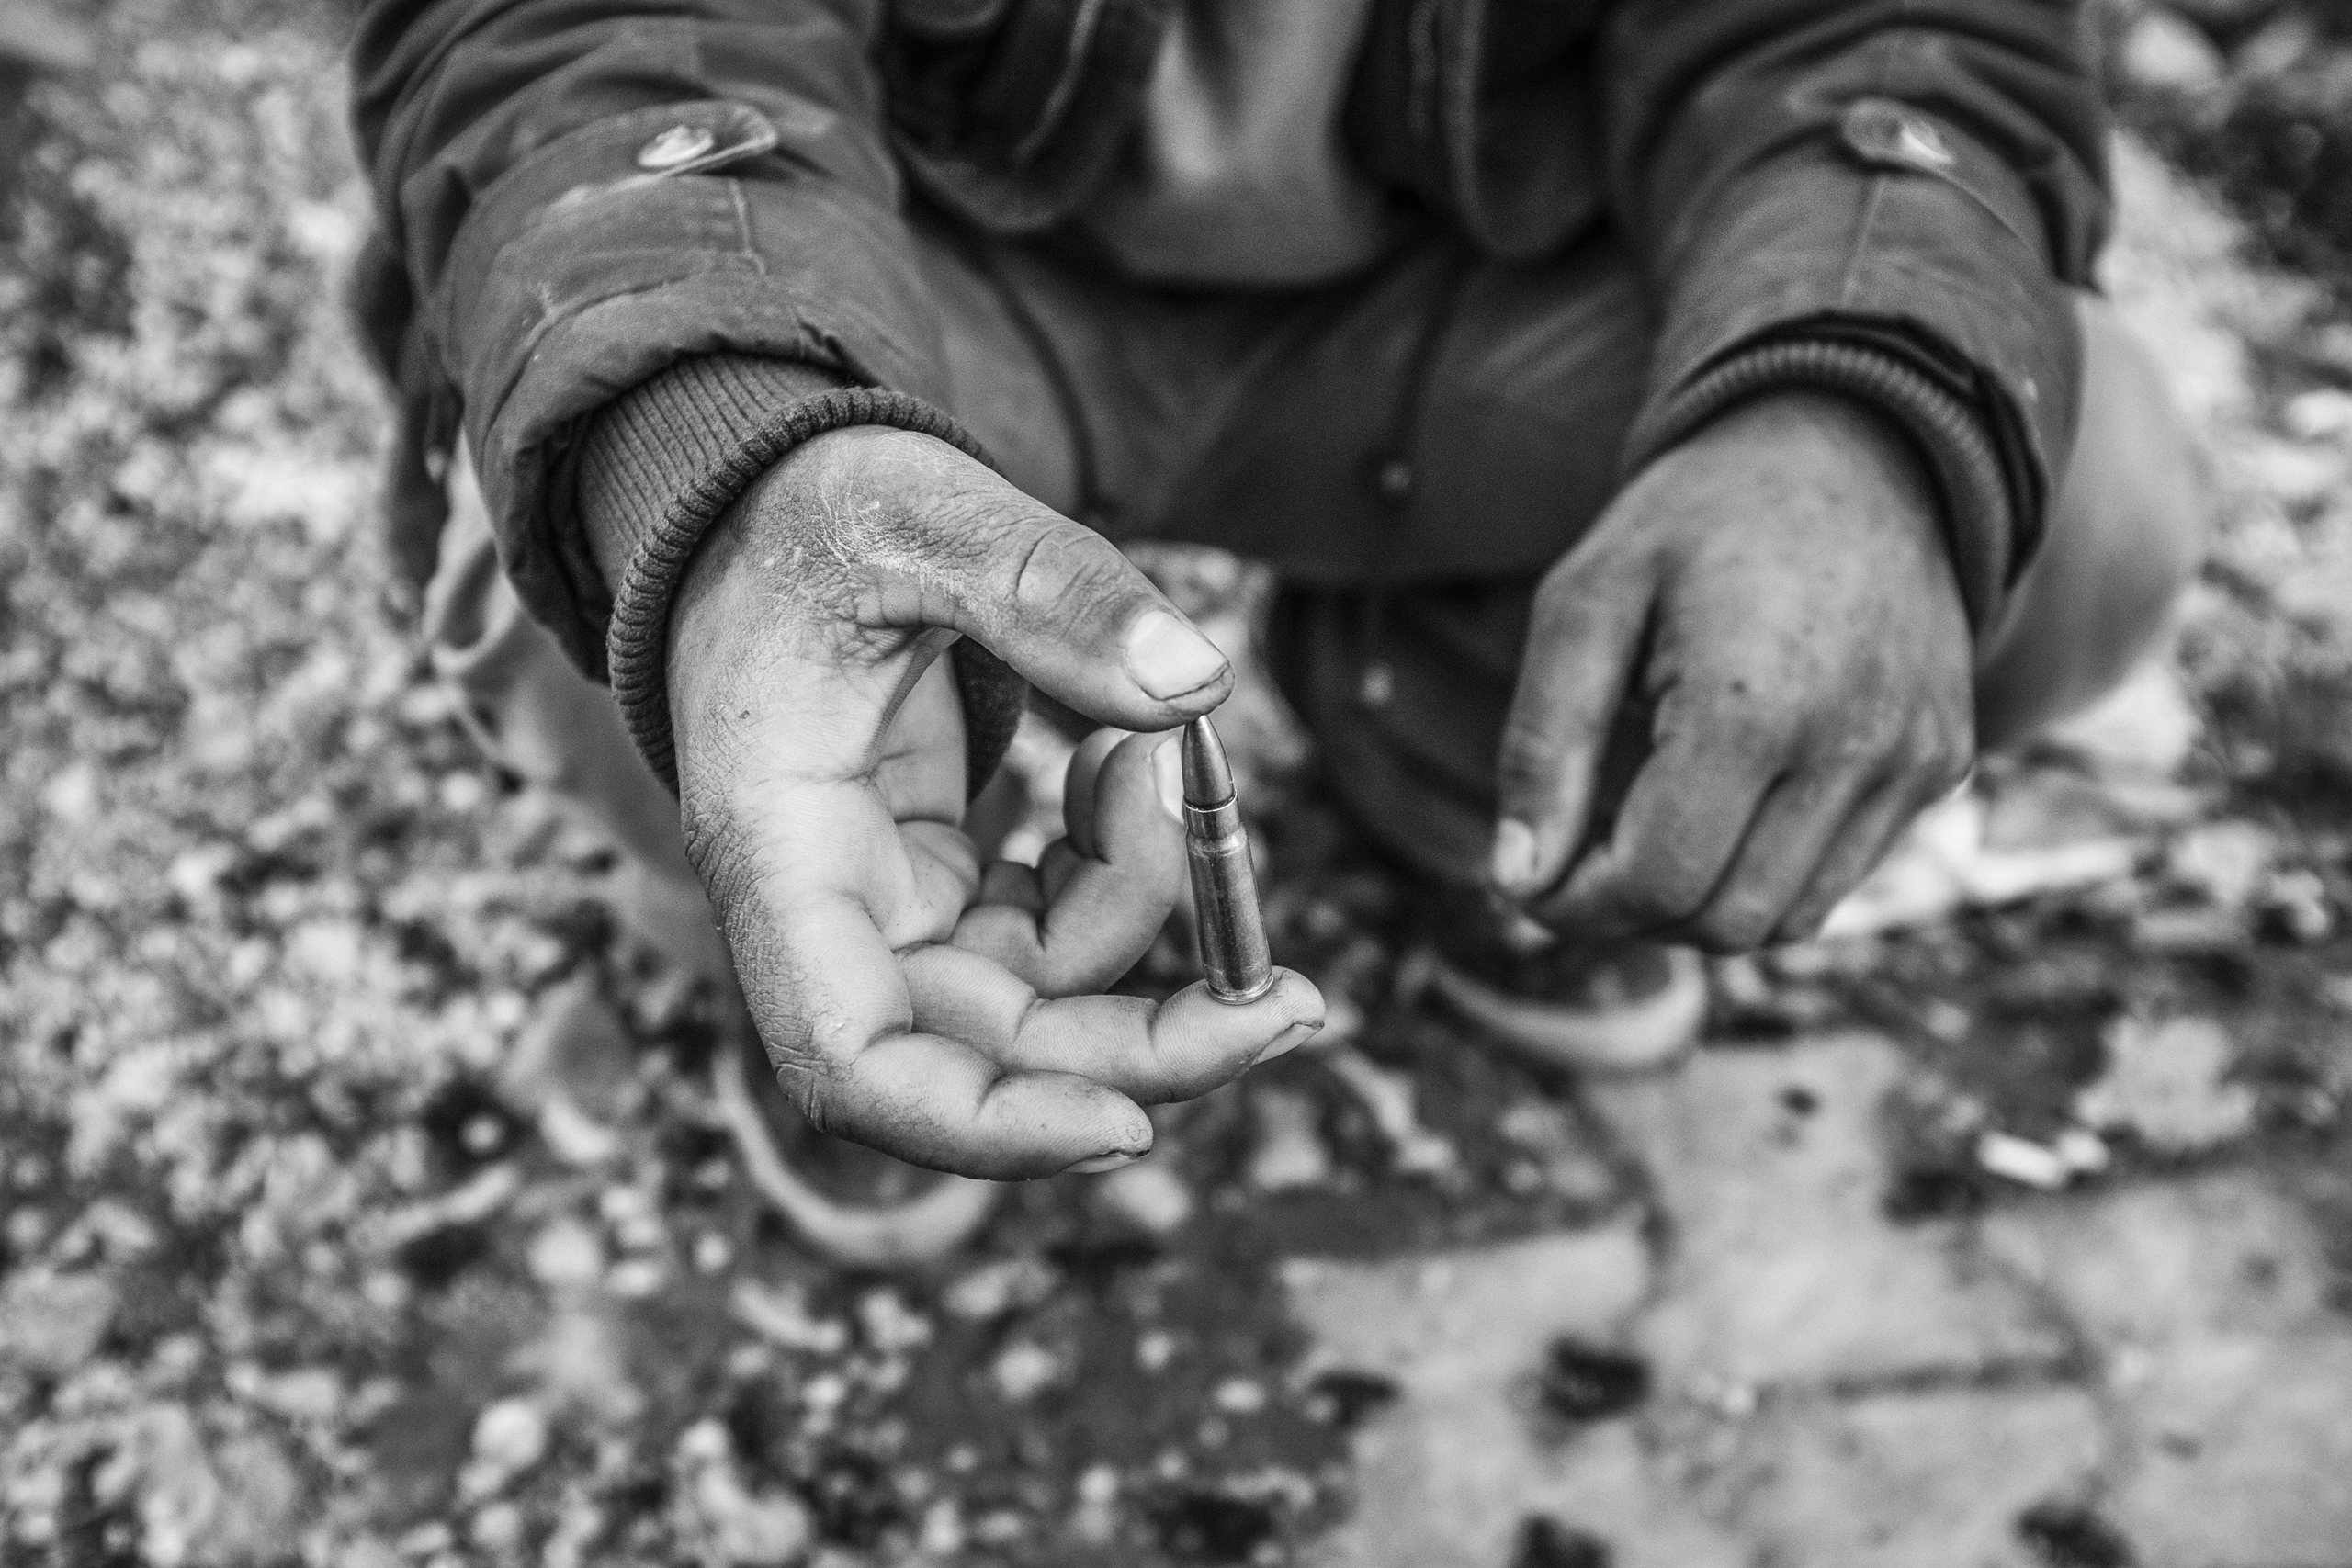 A member of Revolutionary Patriot Youth Movement (YDG-H) shows a bullet used during clashes against Turkish special military forces, Nusaybin, Turkey, Dec. 2015.